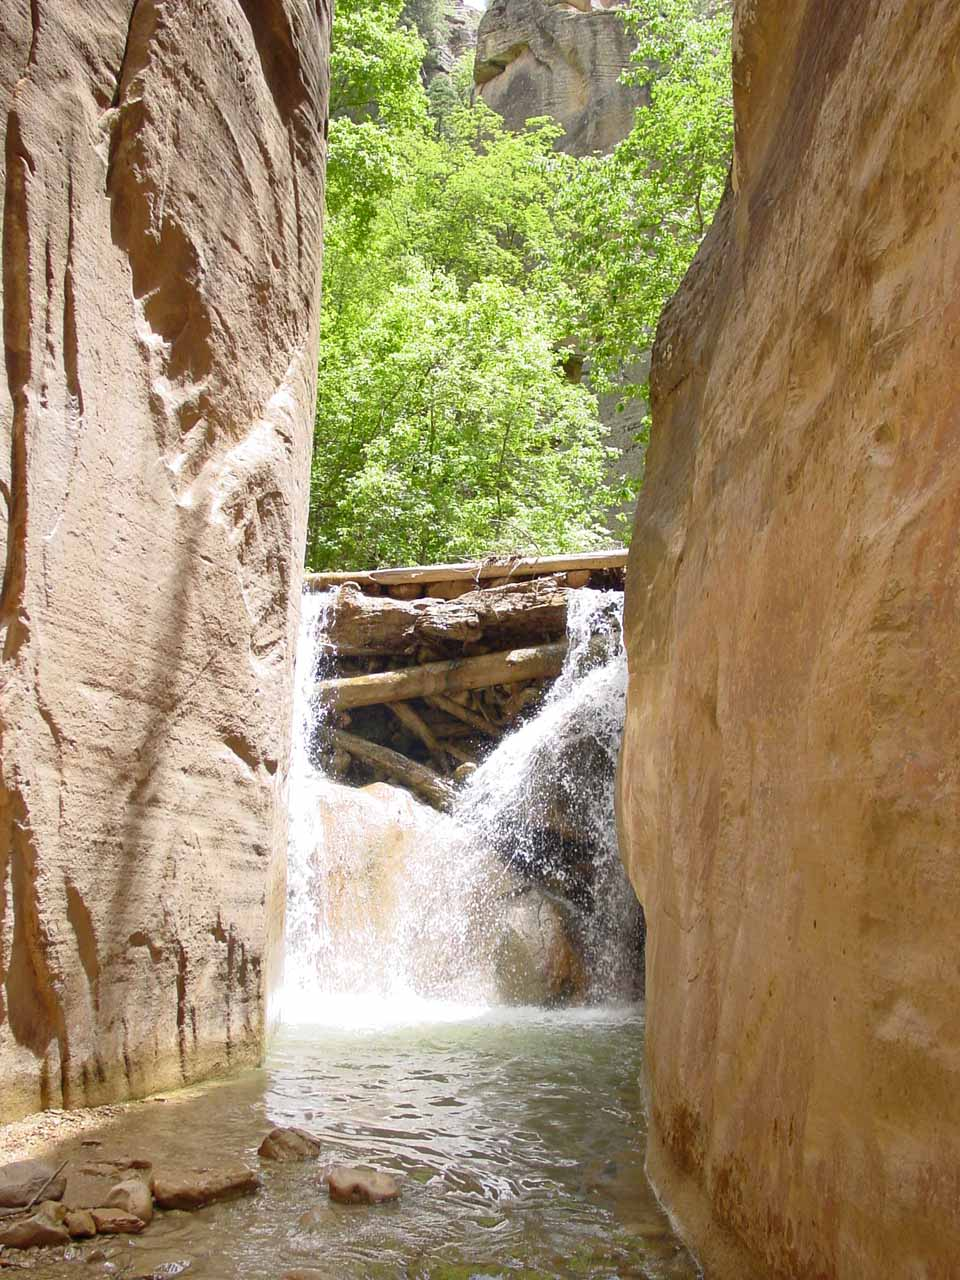 A waterfall in the upper section of the Zion Narrows